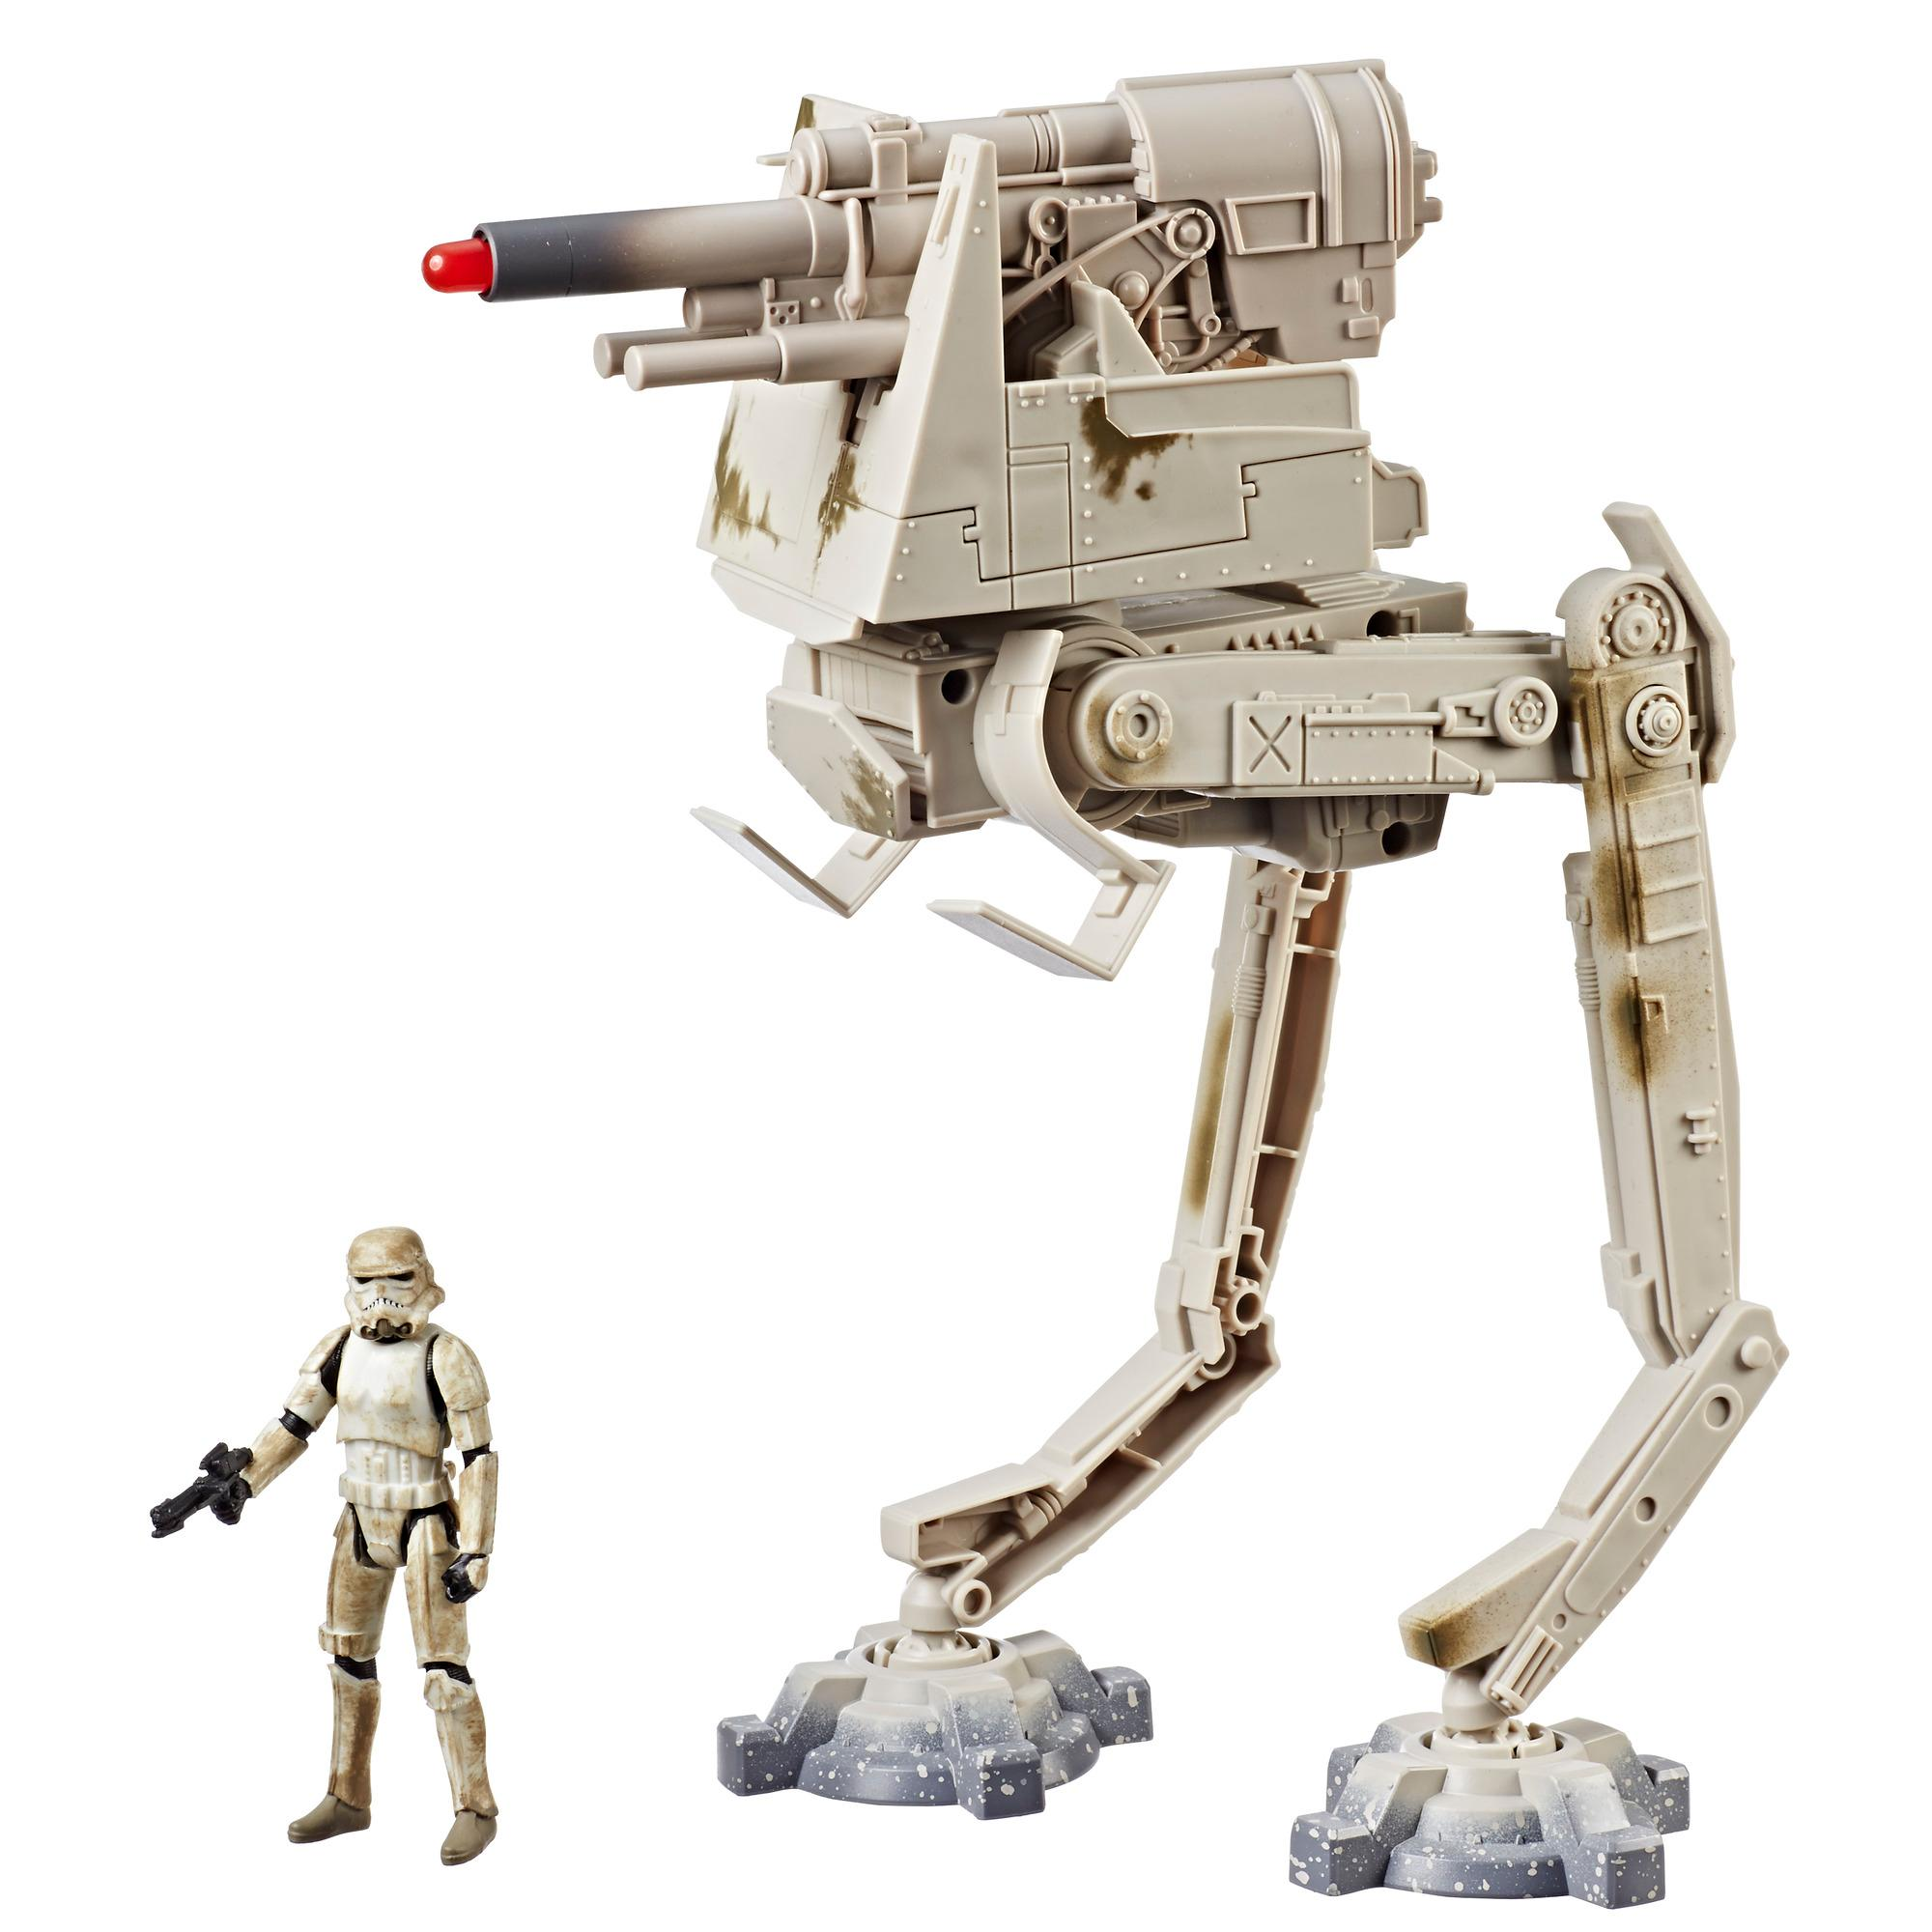 Star Wars Force Link 2.0 - Caminante imperial AT-DT con figura de Stormtrooper (Mimban)